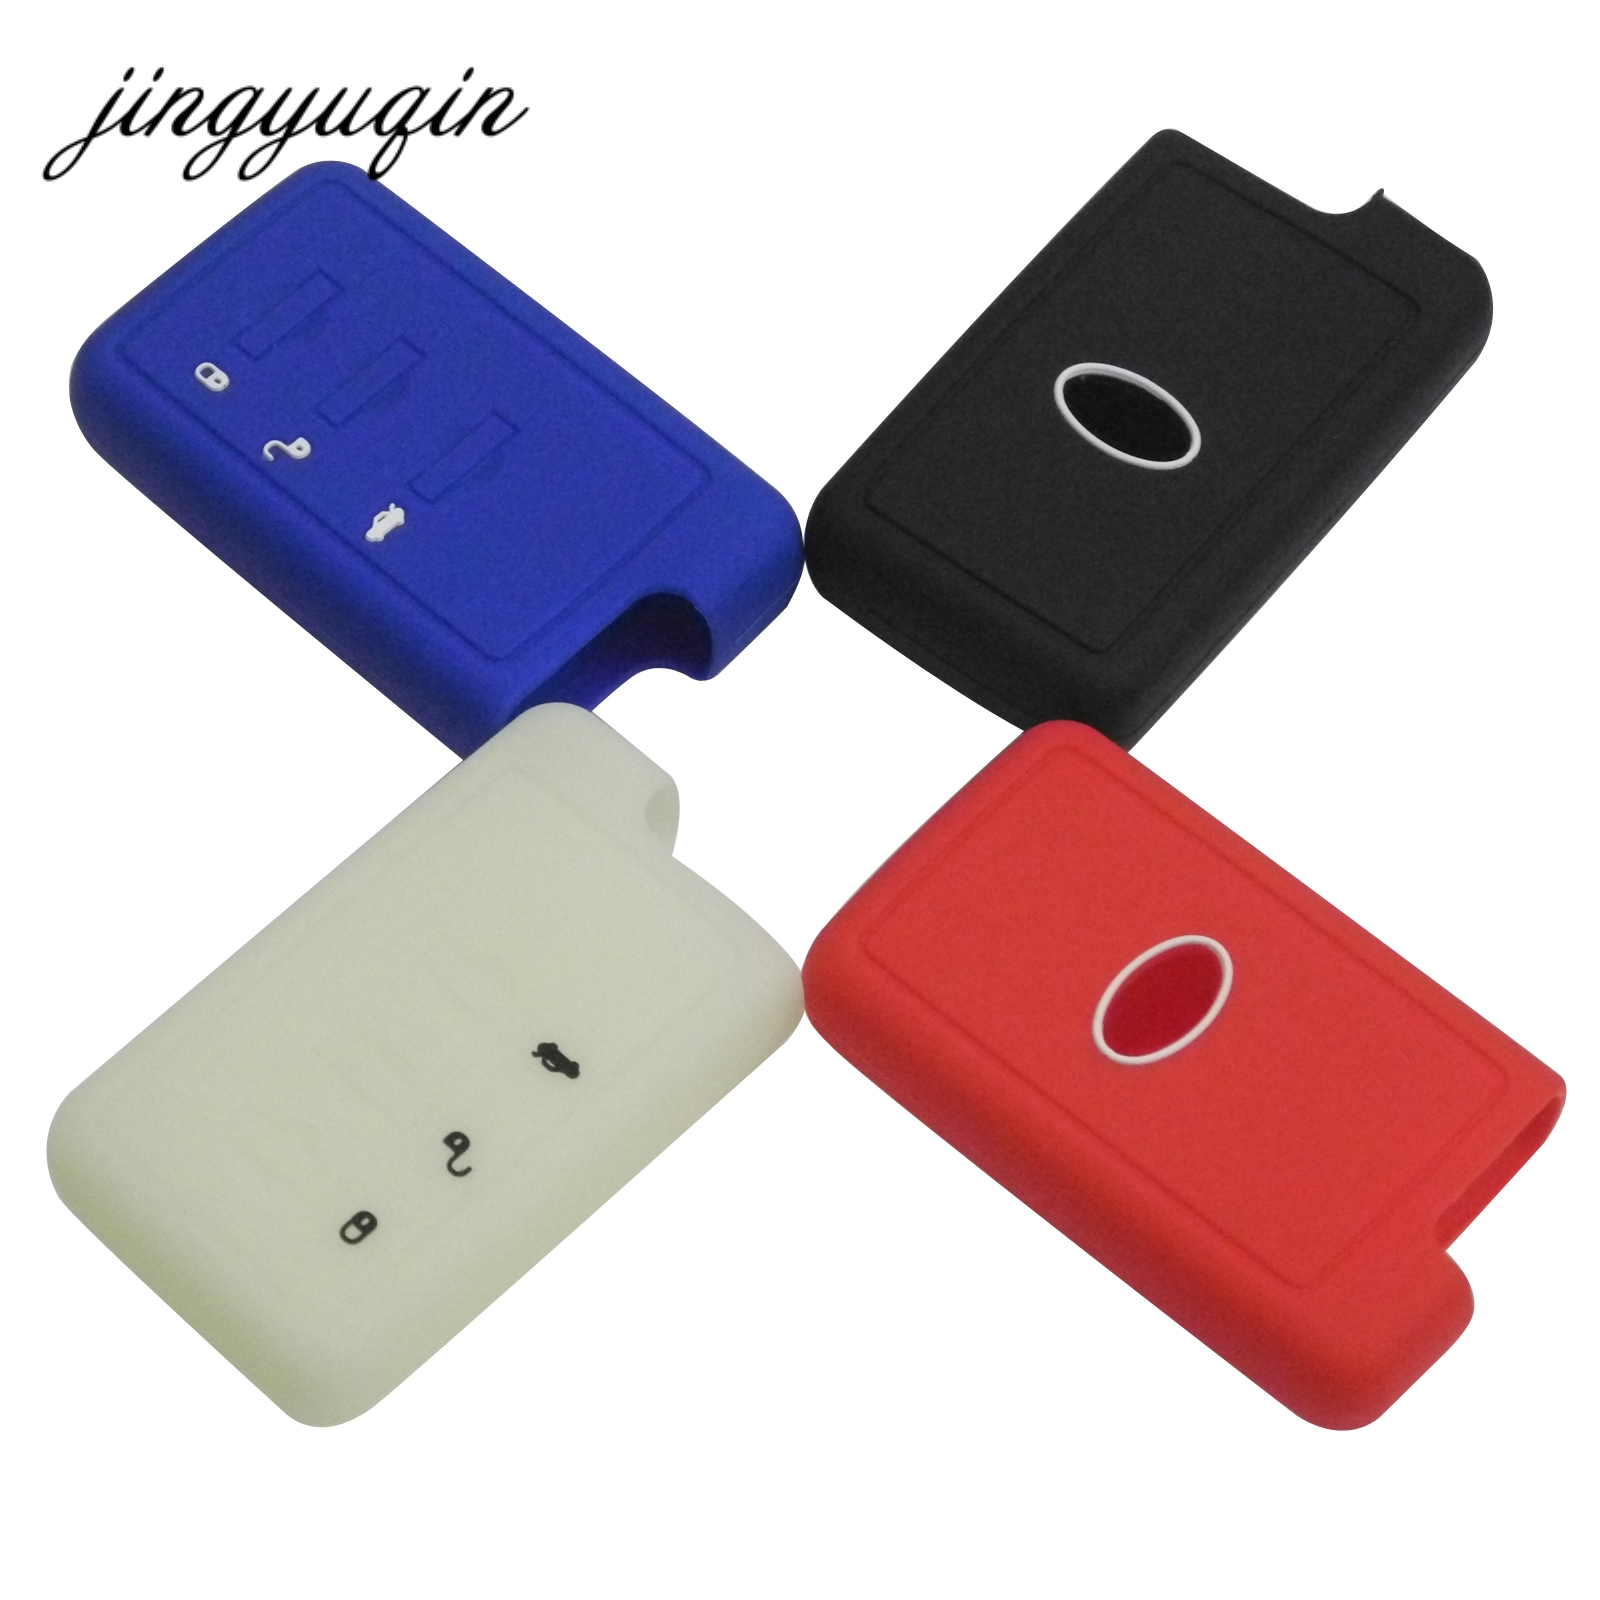 Jingyuqin Silicone Car Key Cover For Subaru XV Forester Outback Legacy Impreza Mrxsti 3 Button Remote Smart Key Case Holder